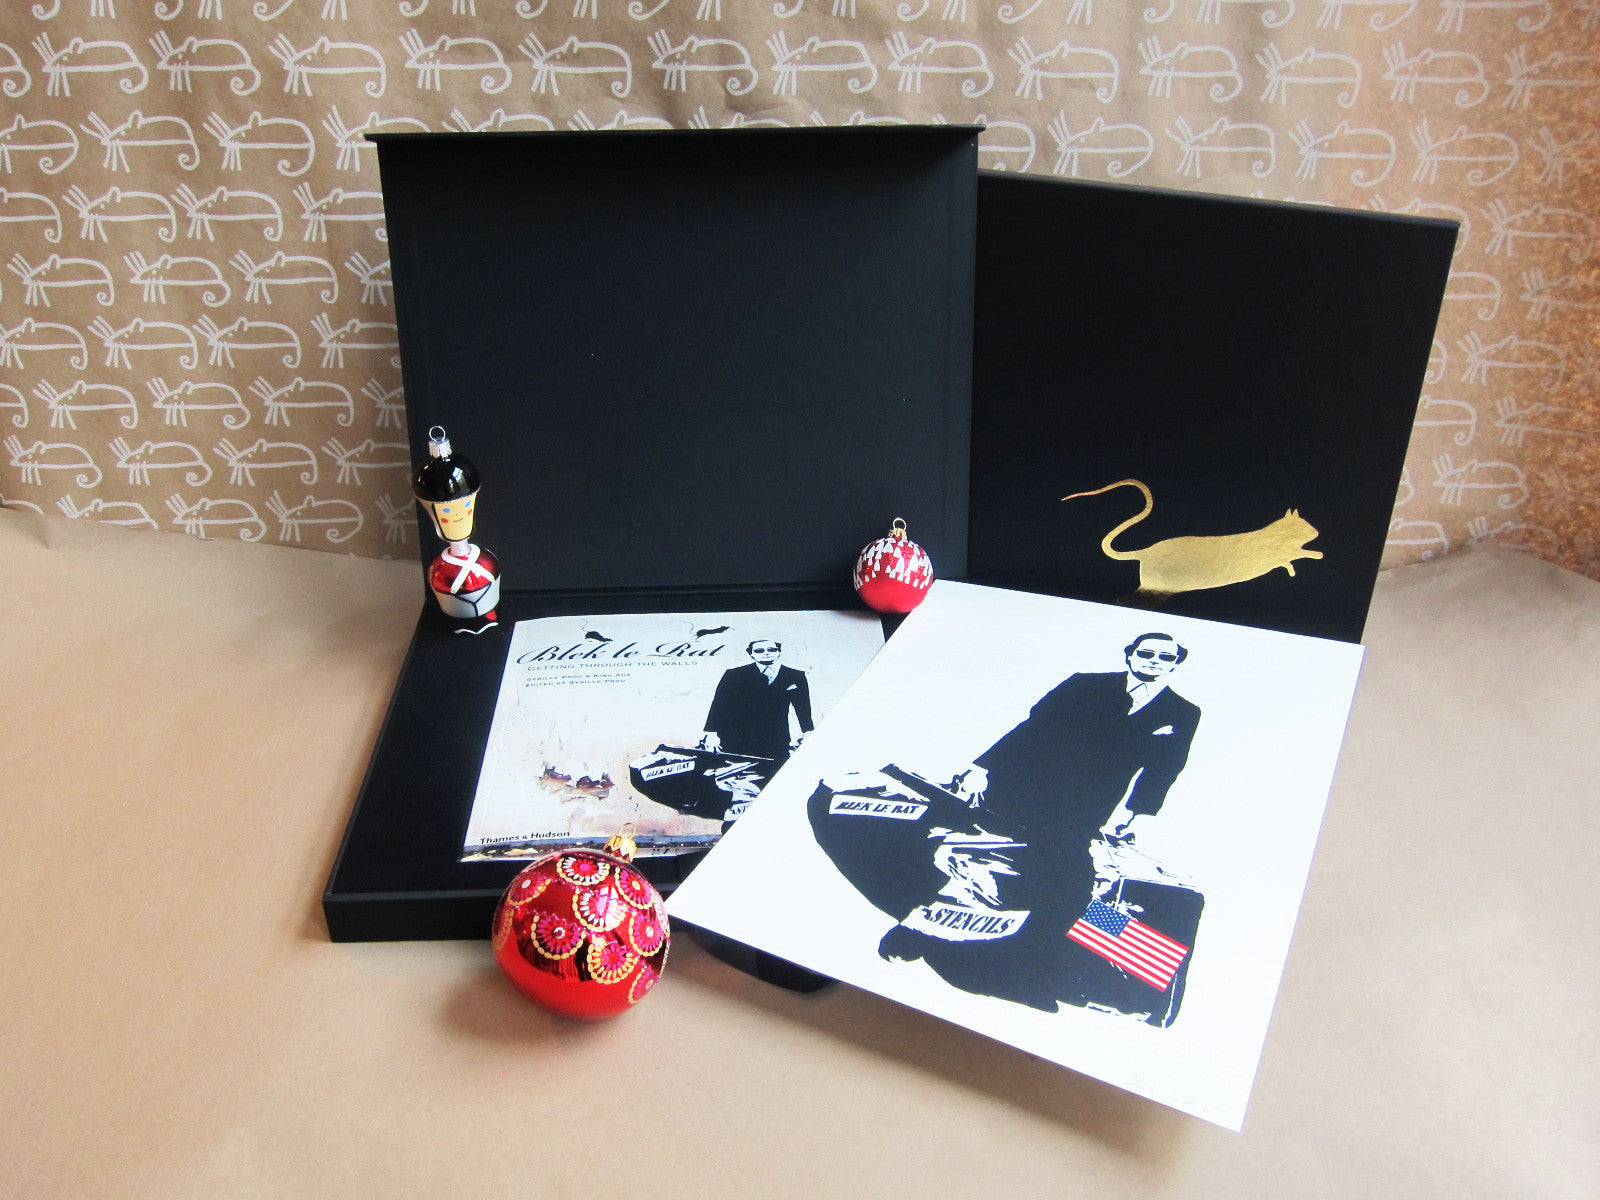 INTERNATIONAL: Limited Edition Blek Le Rat Box